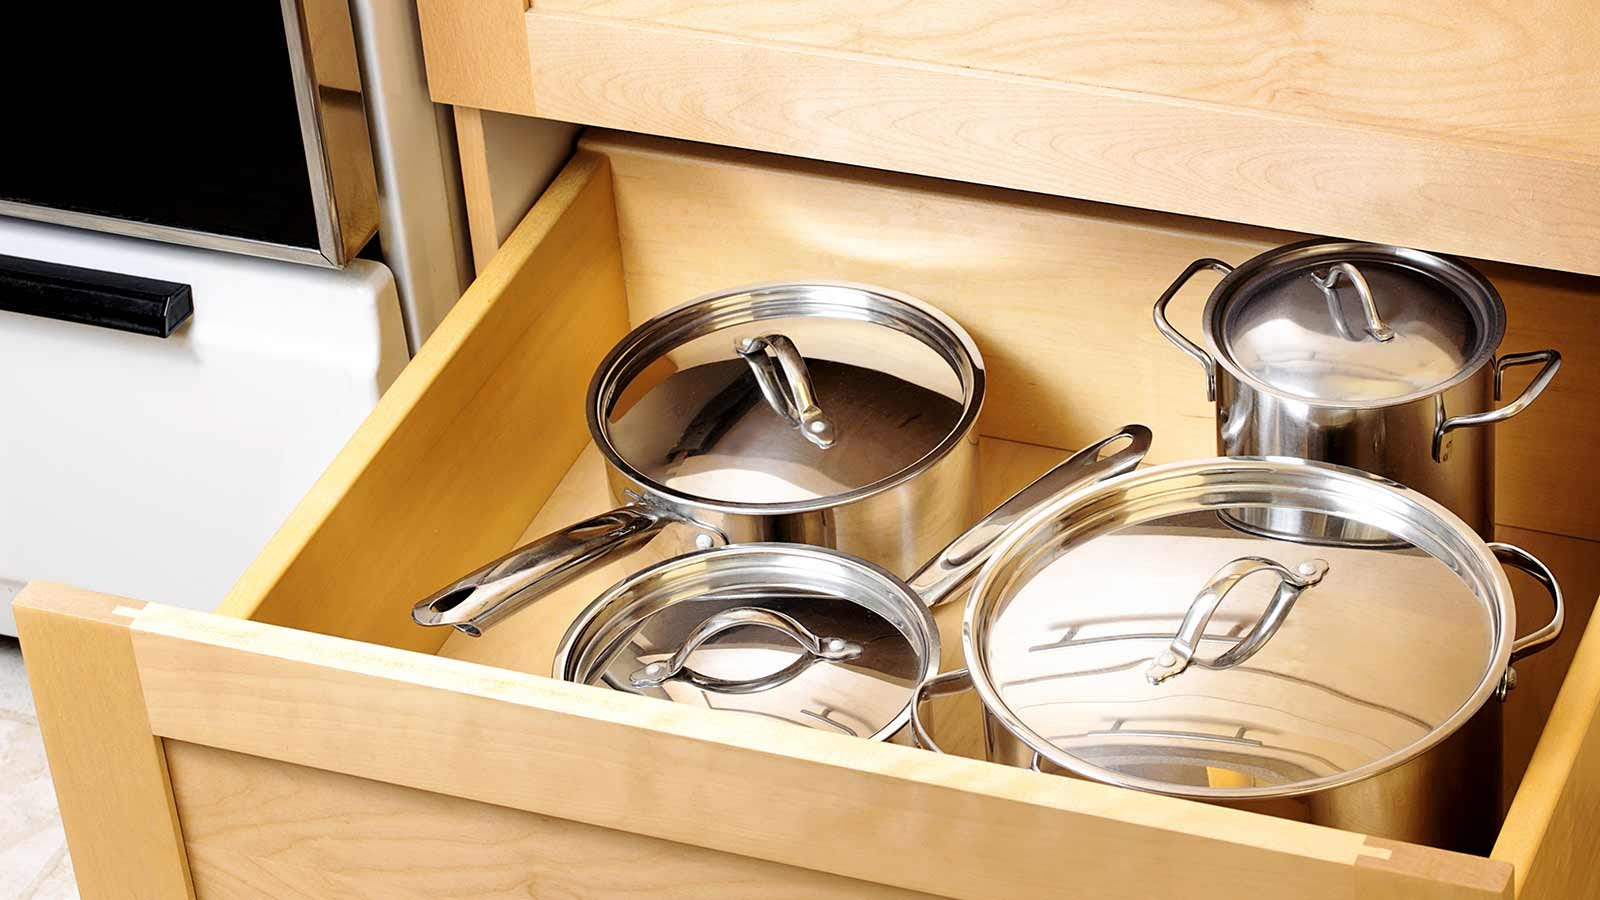 An organized kitchen drawer with tidy pots and pans.